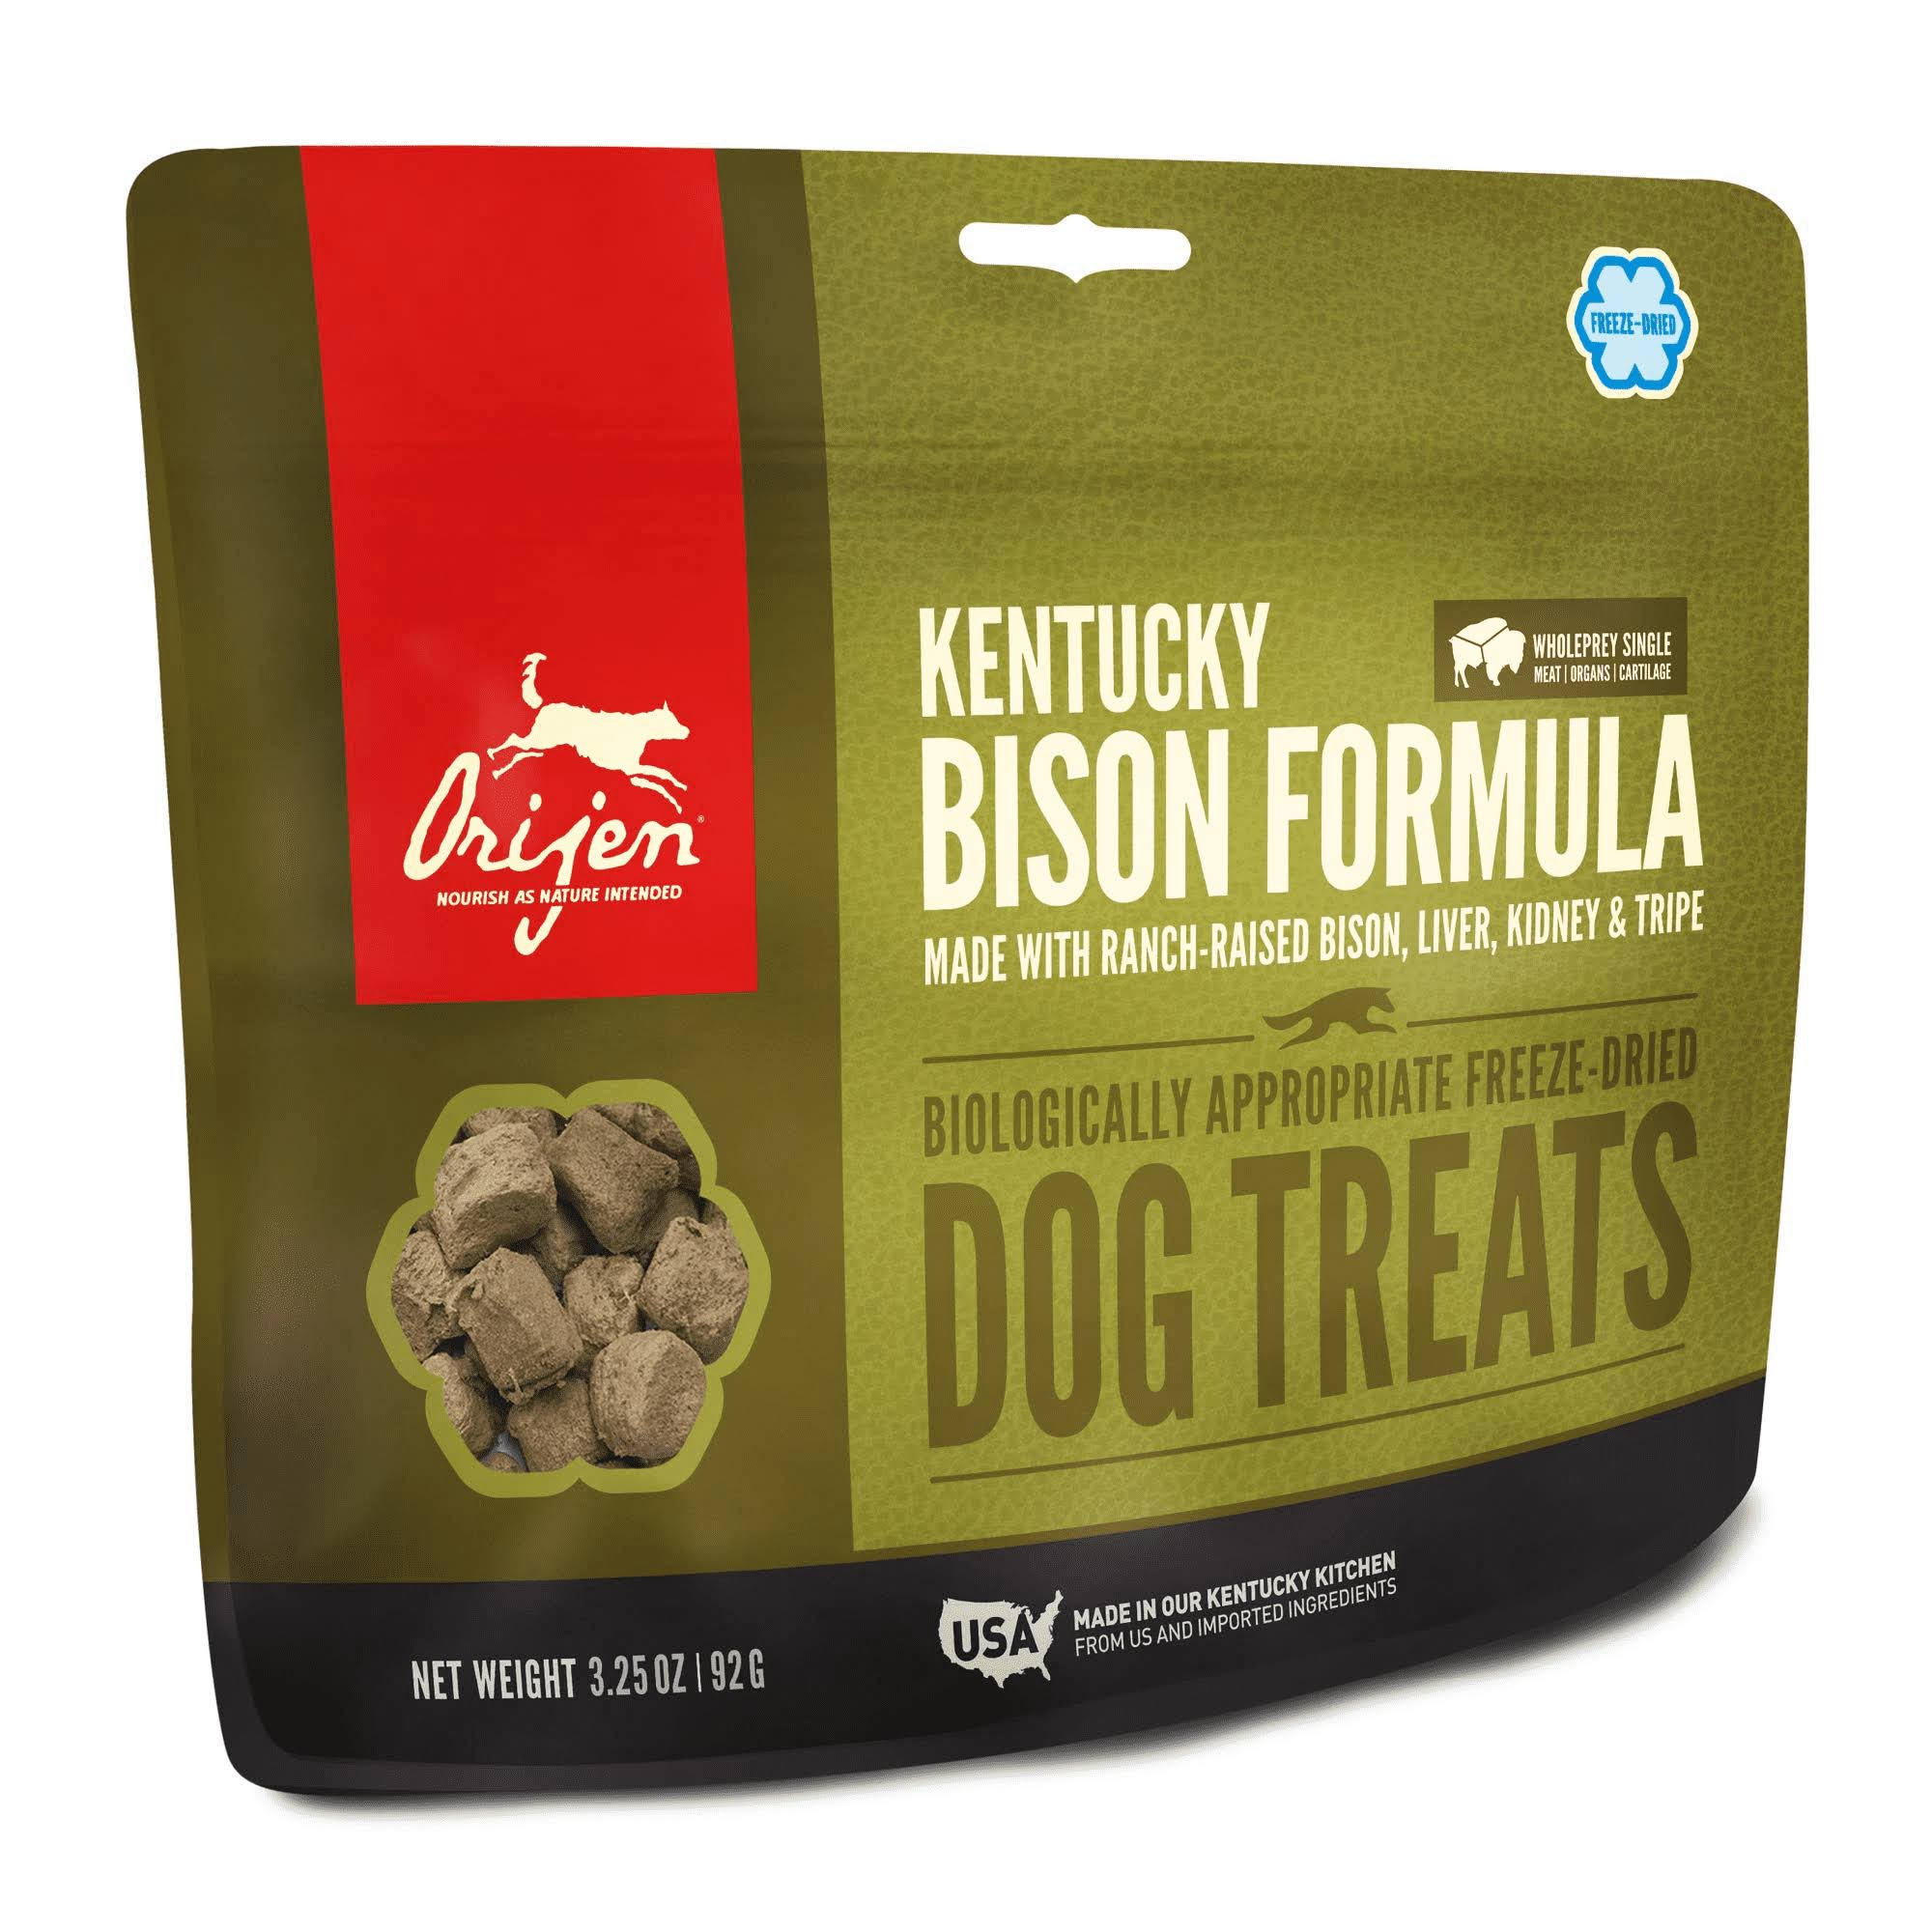 ORIJEN Freeze Dried Dog Treats, Kentucky Bison / 3.25 oz